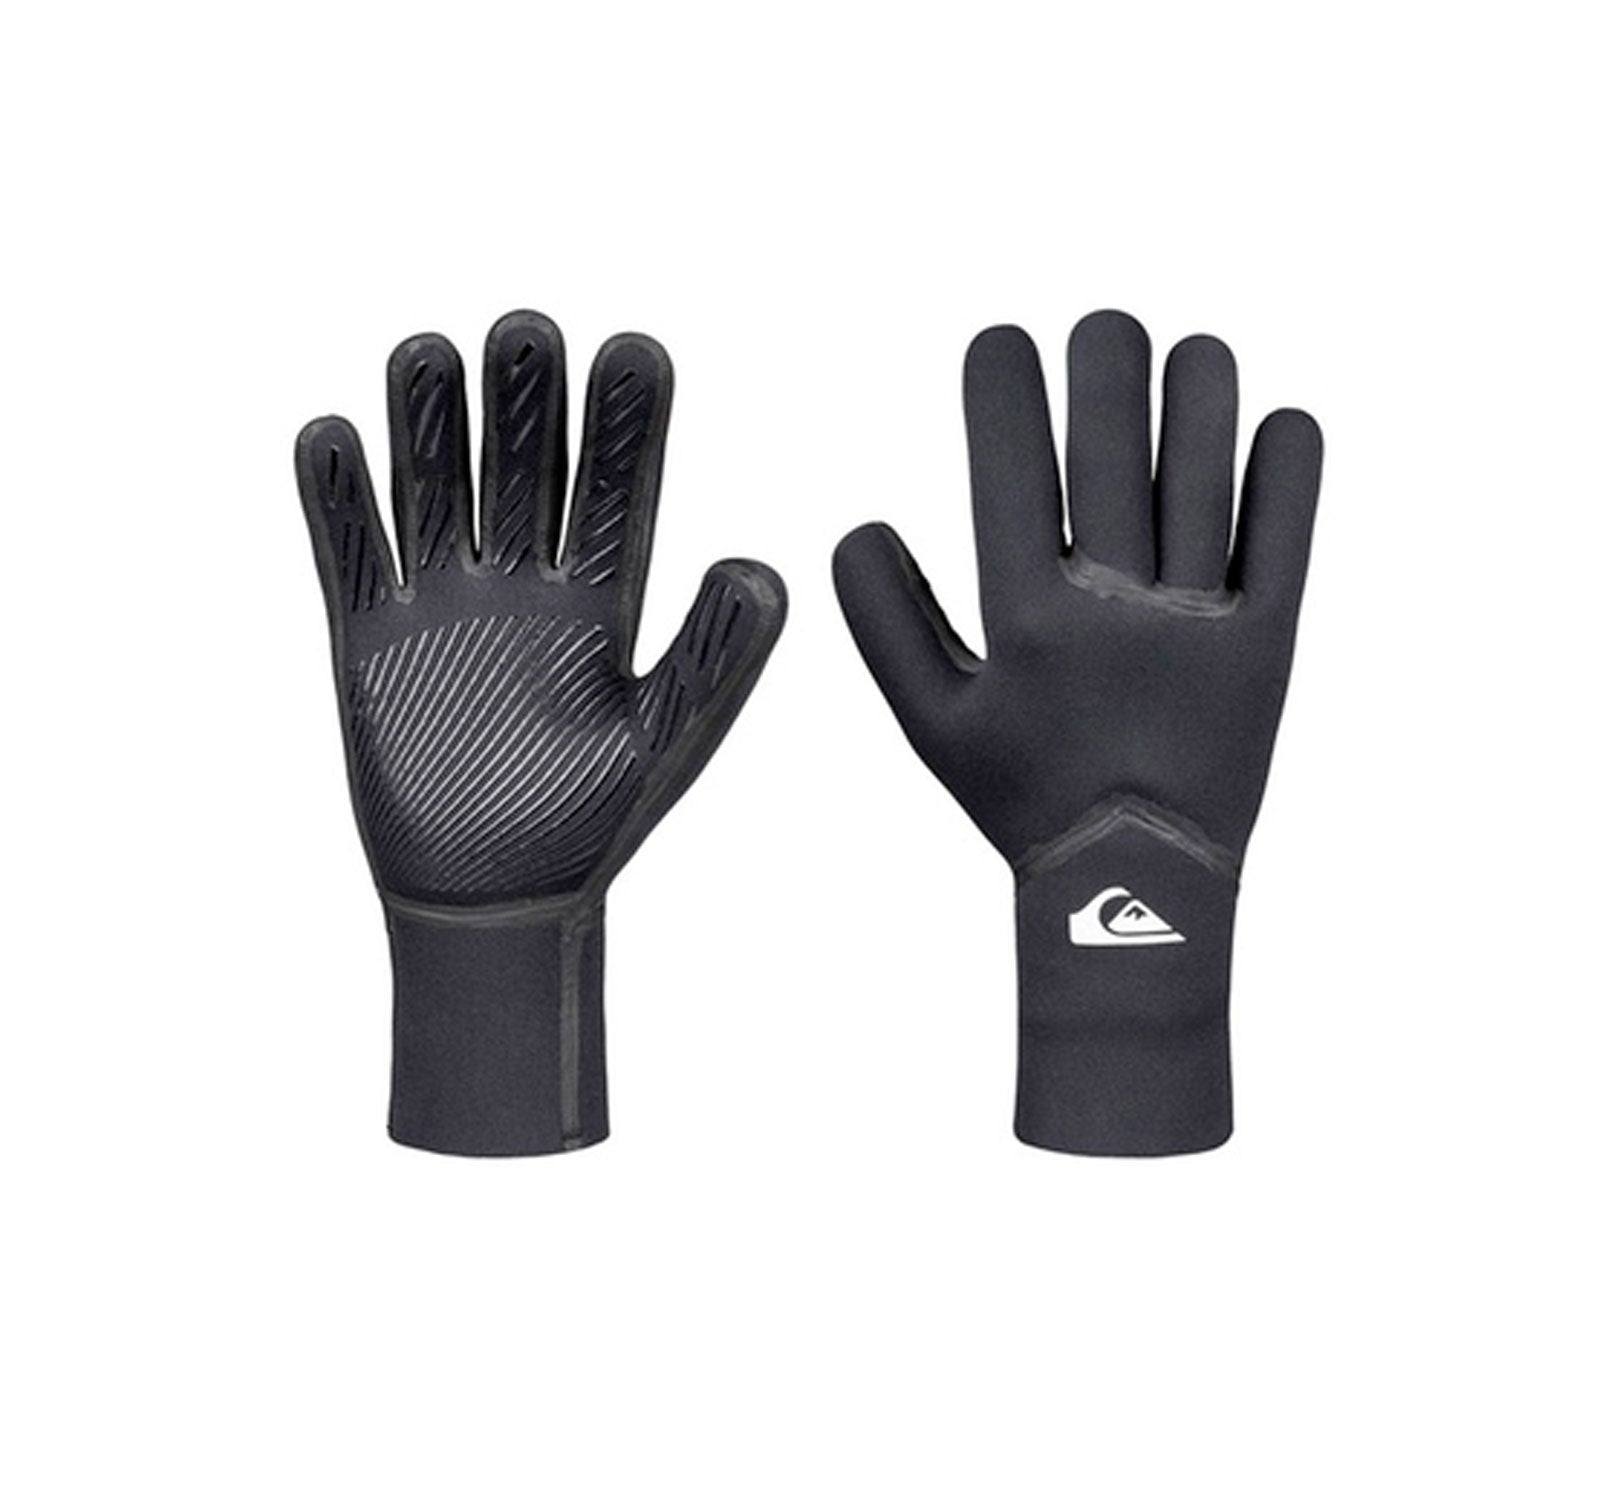 Quiksilver Syncro 3mm Men's Wetsuit Gloves